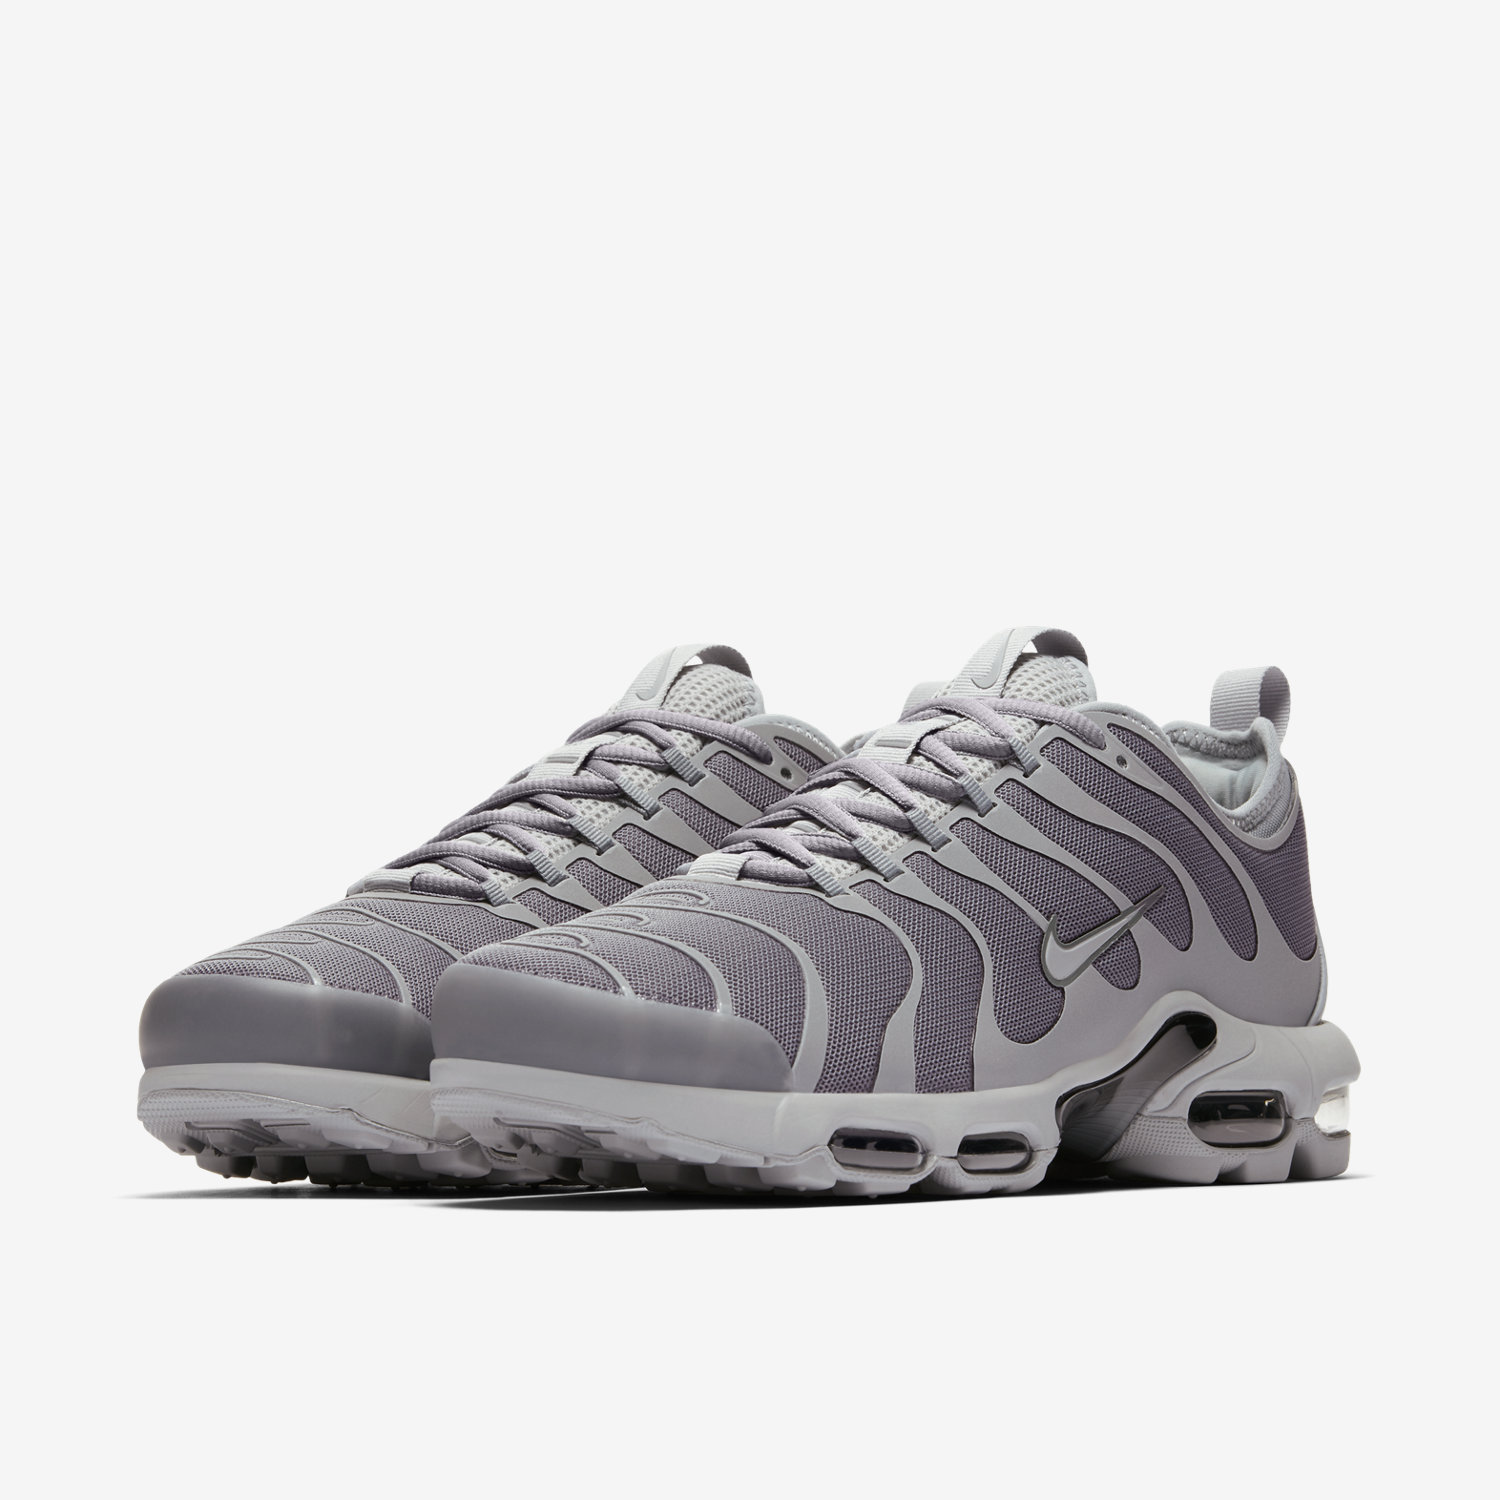 check out 95231 3a7a2 ... Nike Air Max Plus Tn Ultra Mens Shoe.